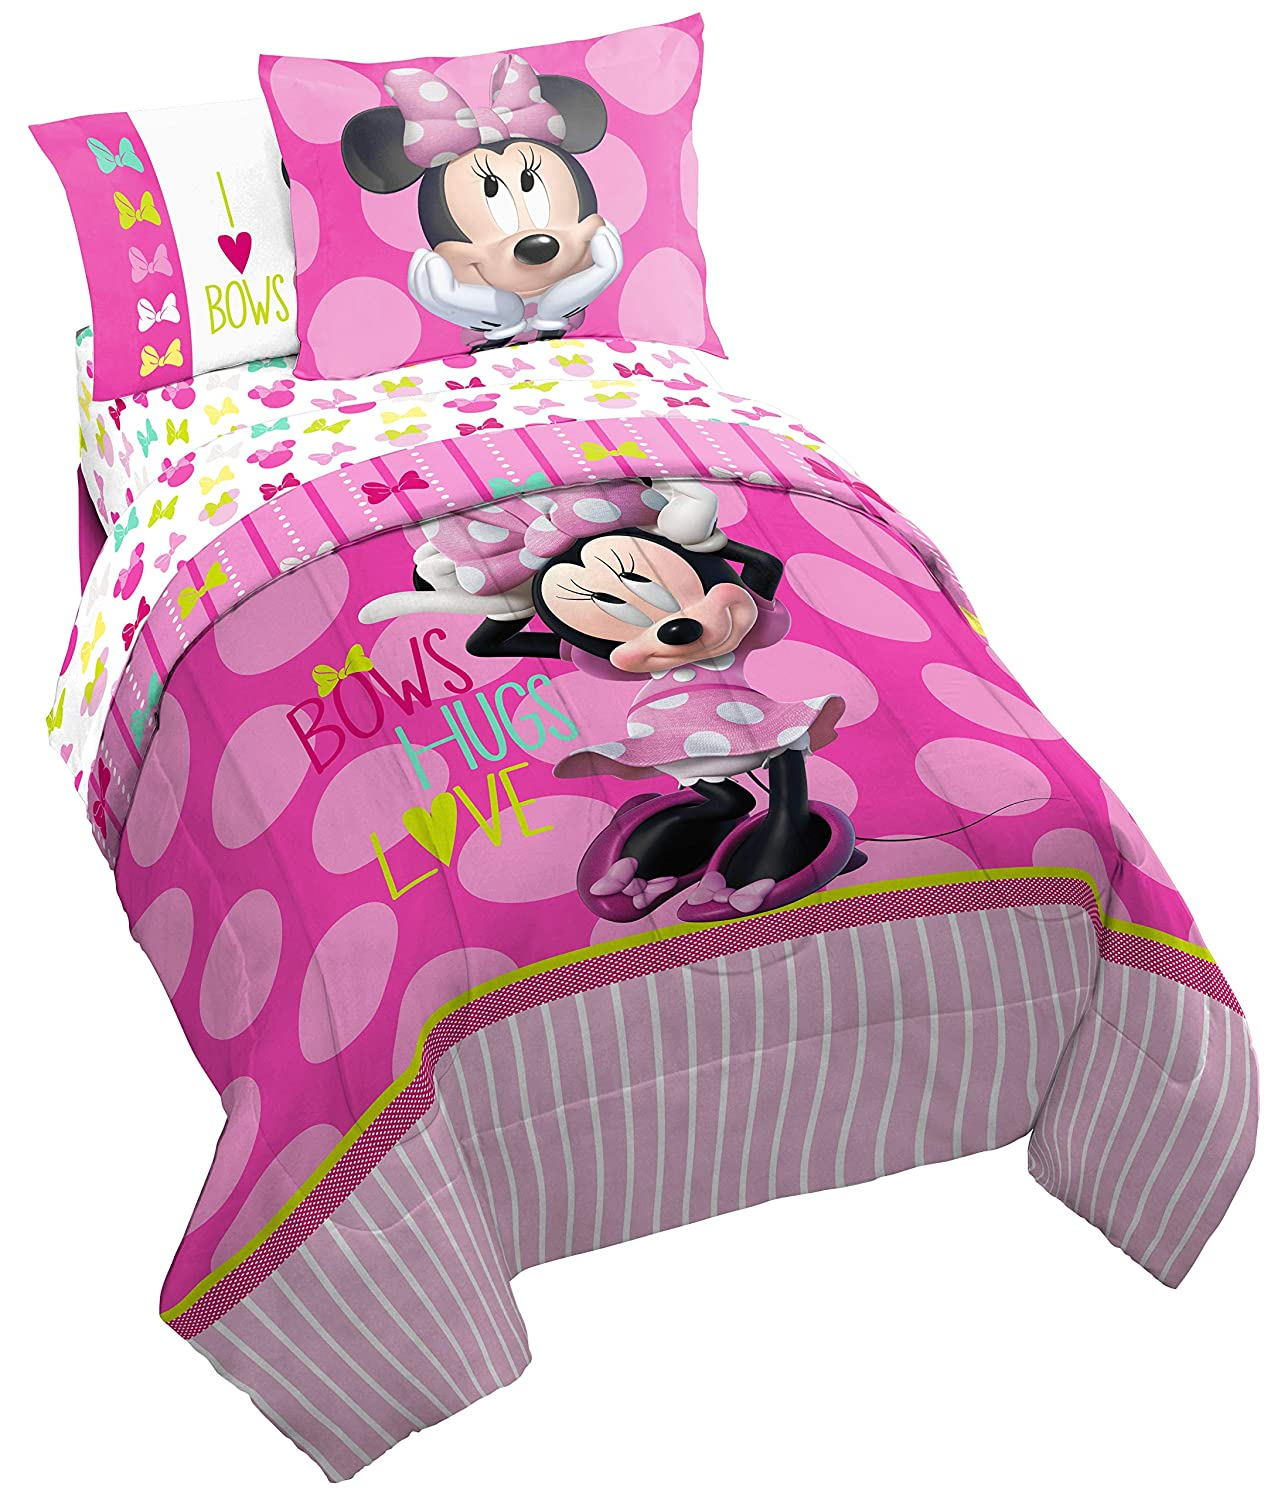 Disney Minnie Mouse Bigger Bow Twin Comforter - Super Soft Kids Reversible  Bedding features Minnie Mouse - Fade Resistant Polyester Includes 1 Bonus  ...